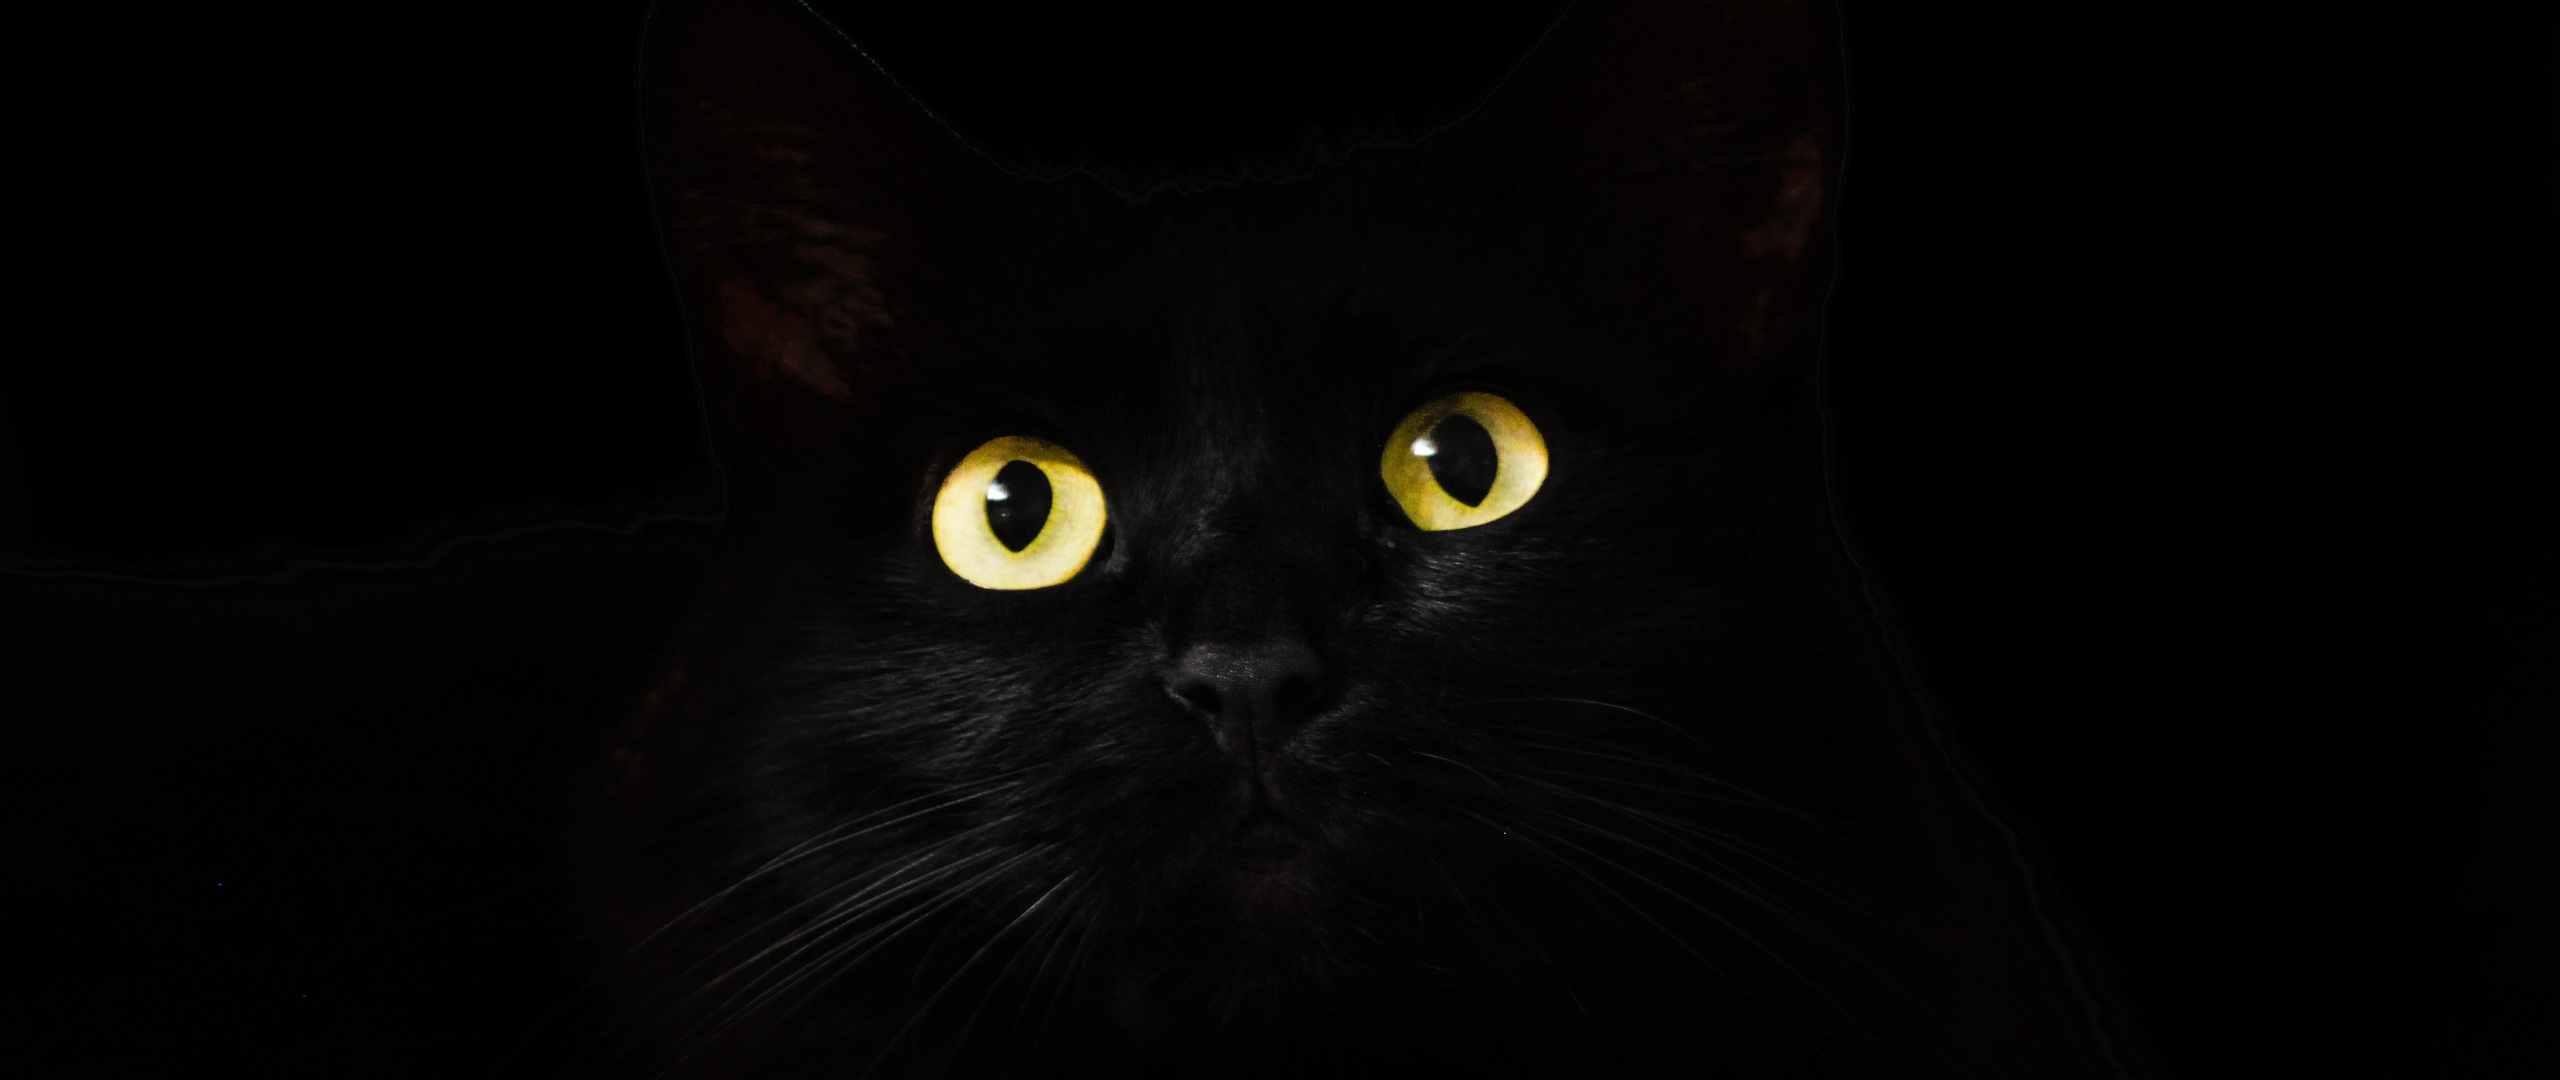 2560x1080 Black Cat Eyes Dark 5k 2560x1080 Resolution Hd 4k Wallpapers Images Backgrounds Photos And Pictures